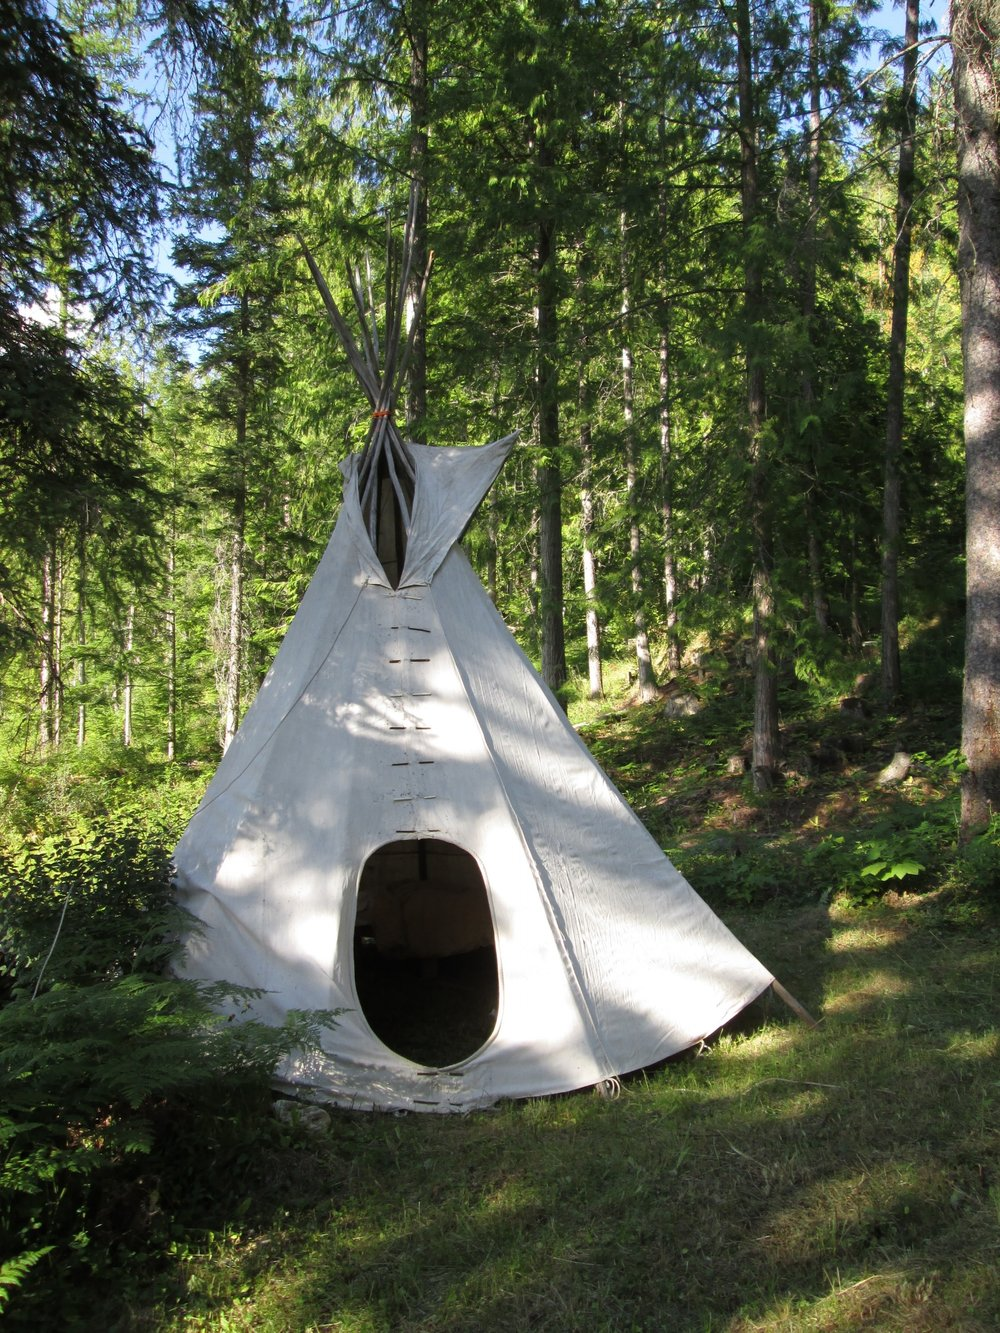 An authentic Tipi located on a private campsite with breathtaking views.